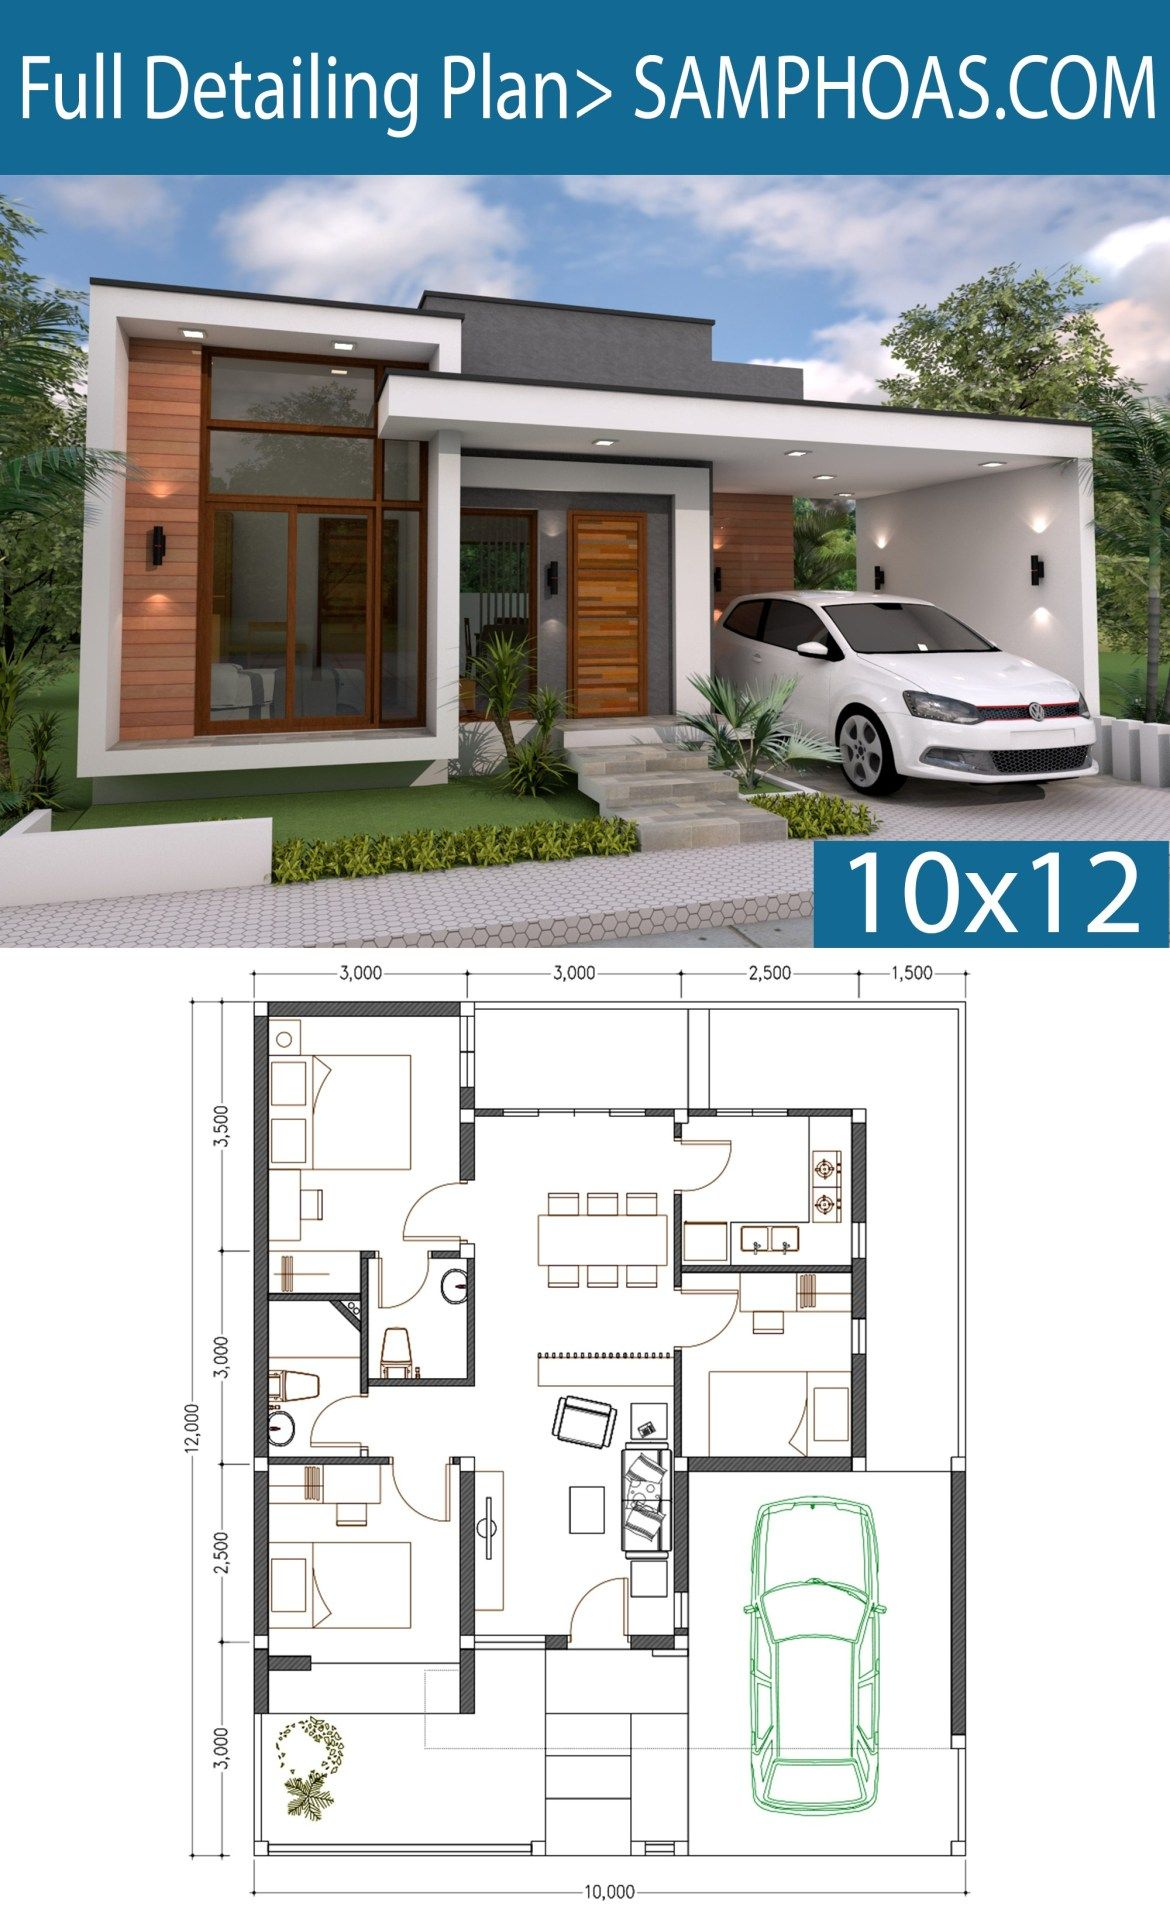 3 Bedrooms Home Design Plan 10x12m House Plans Home inside 11 Smart Concepts of How to Upgrade Modern 3 Bedroom House Plans